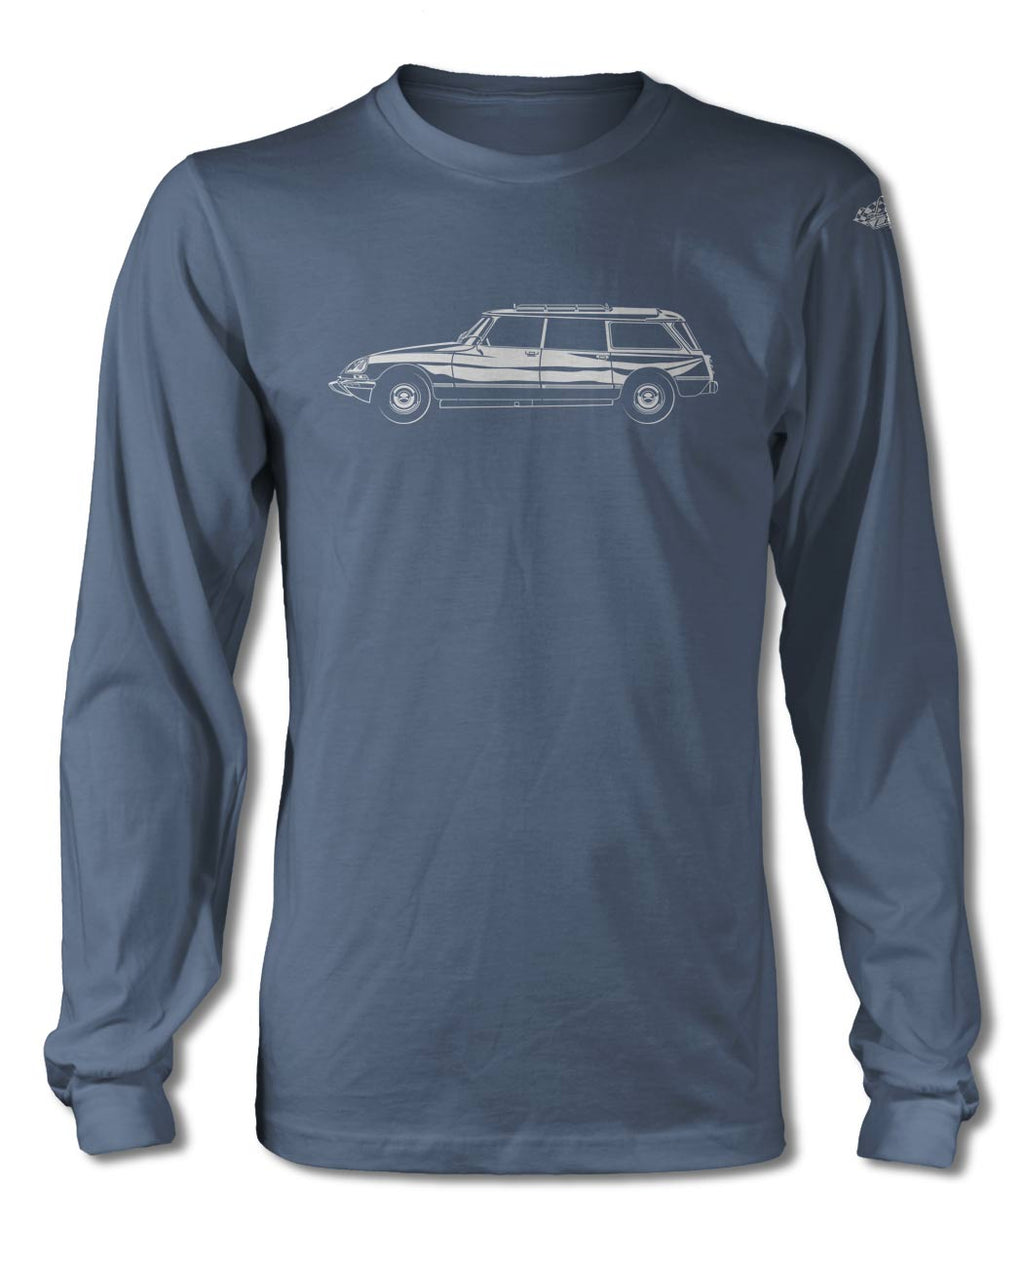 Citroen DS ID 1968 - 1976 Station Wagon T-Shirt - Long Sleeves - Side View